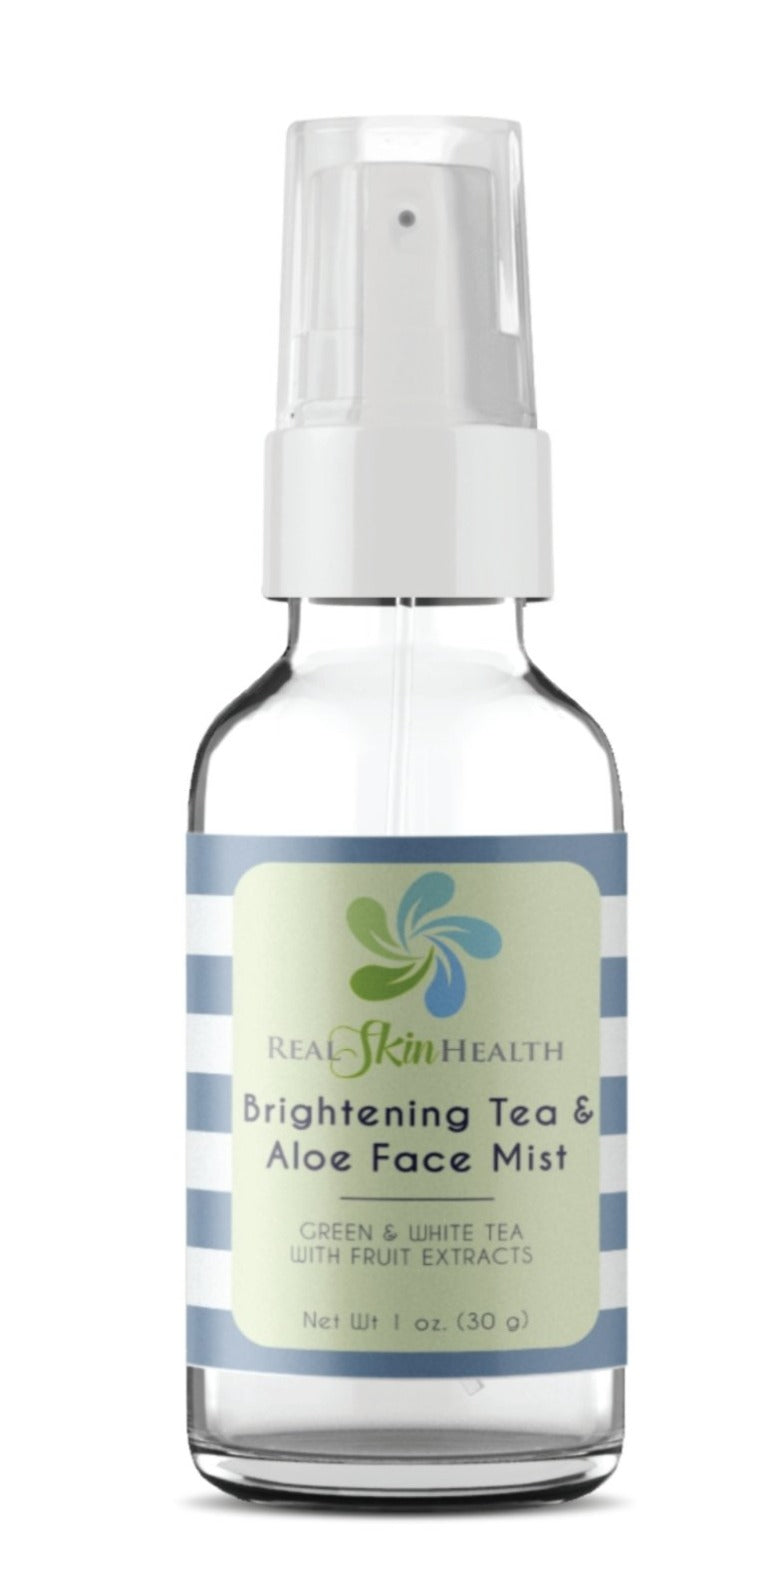 Brightening Tea & Aloe Face Mist 1 oz.